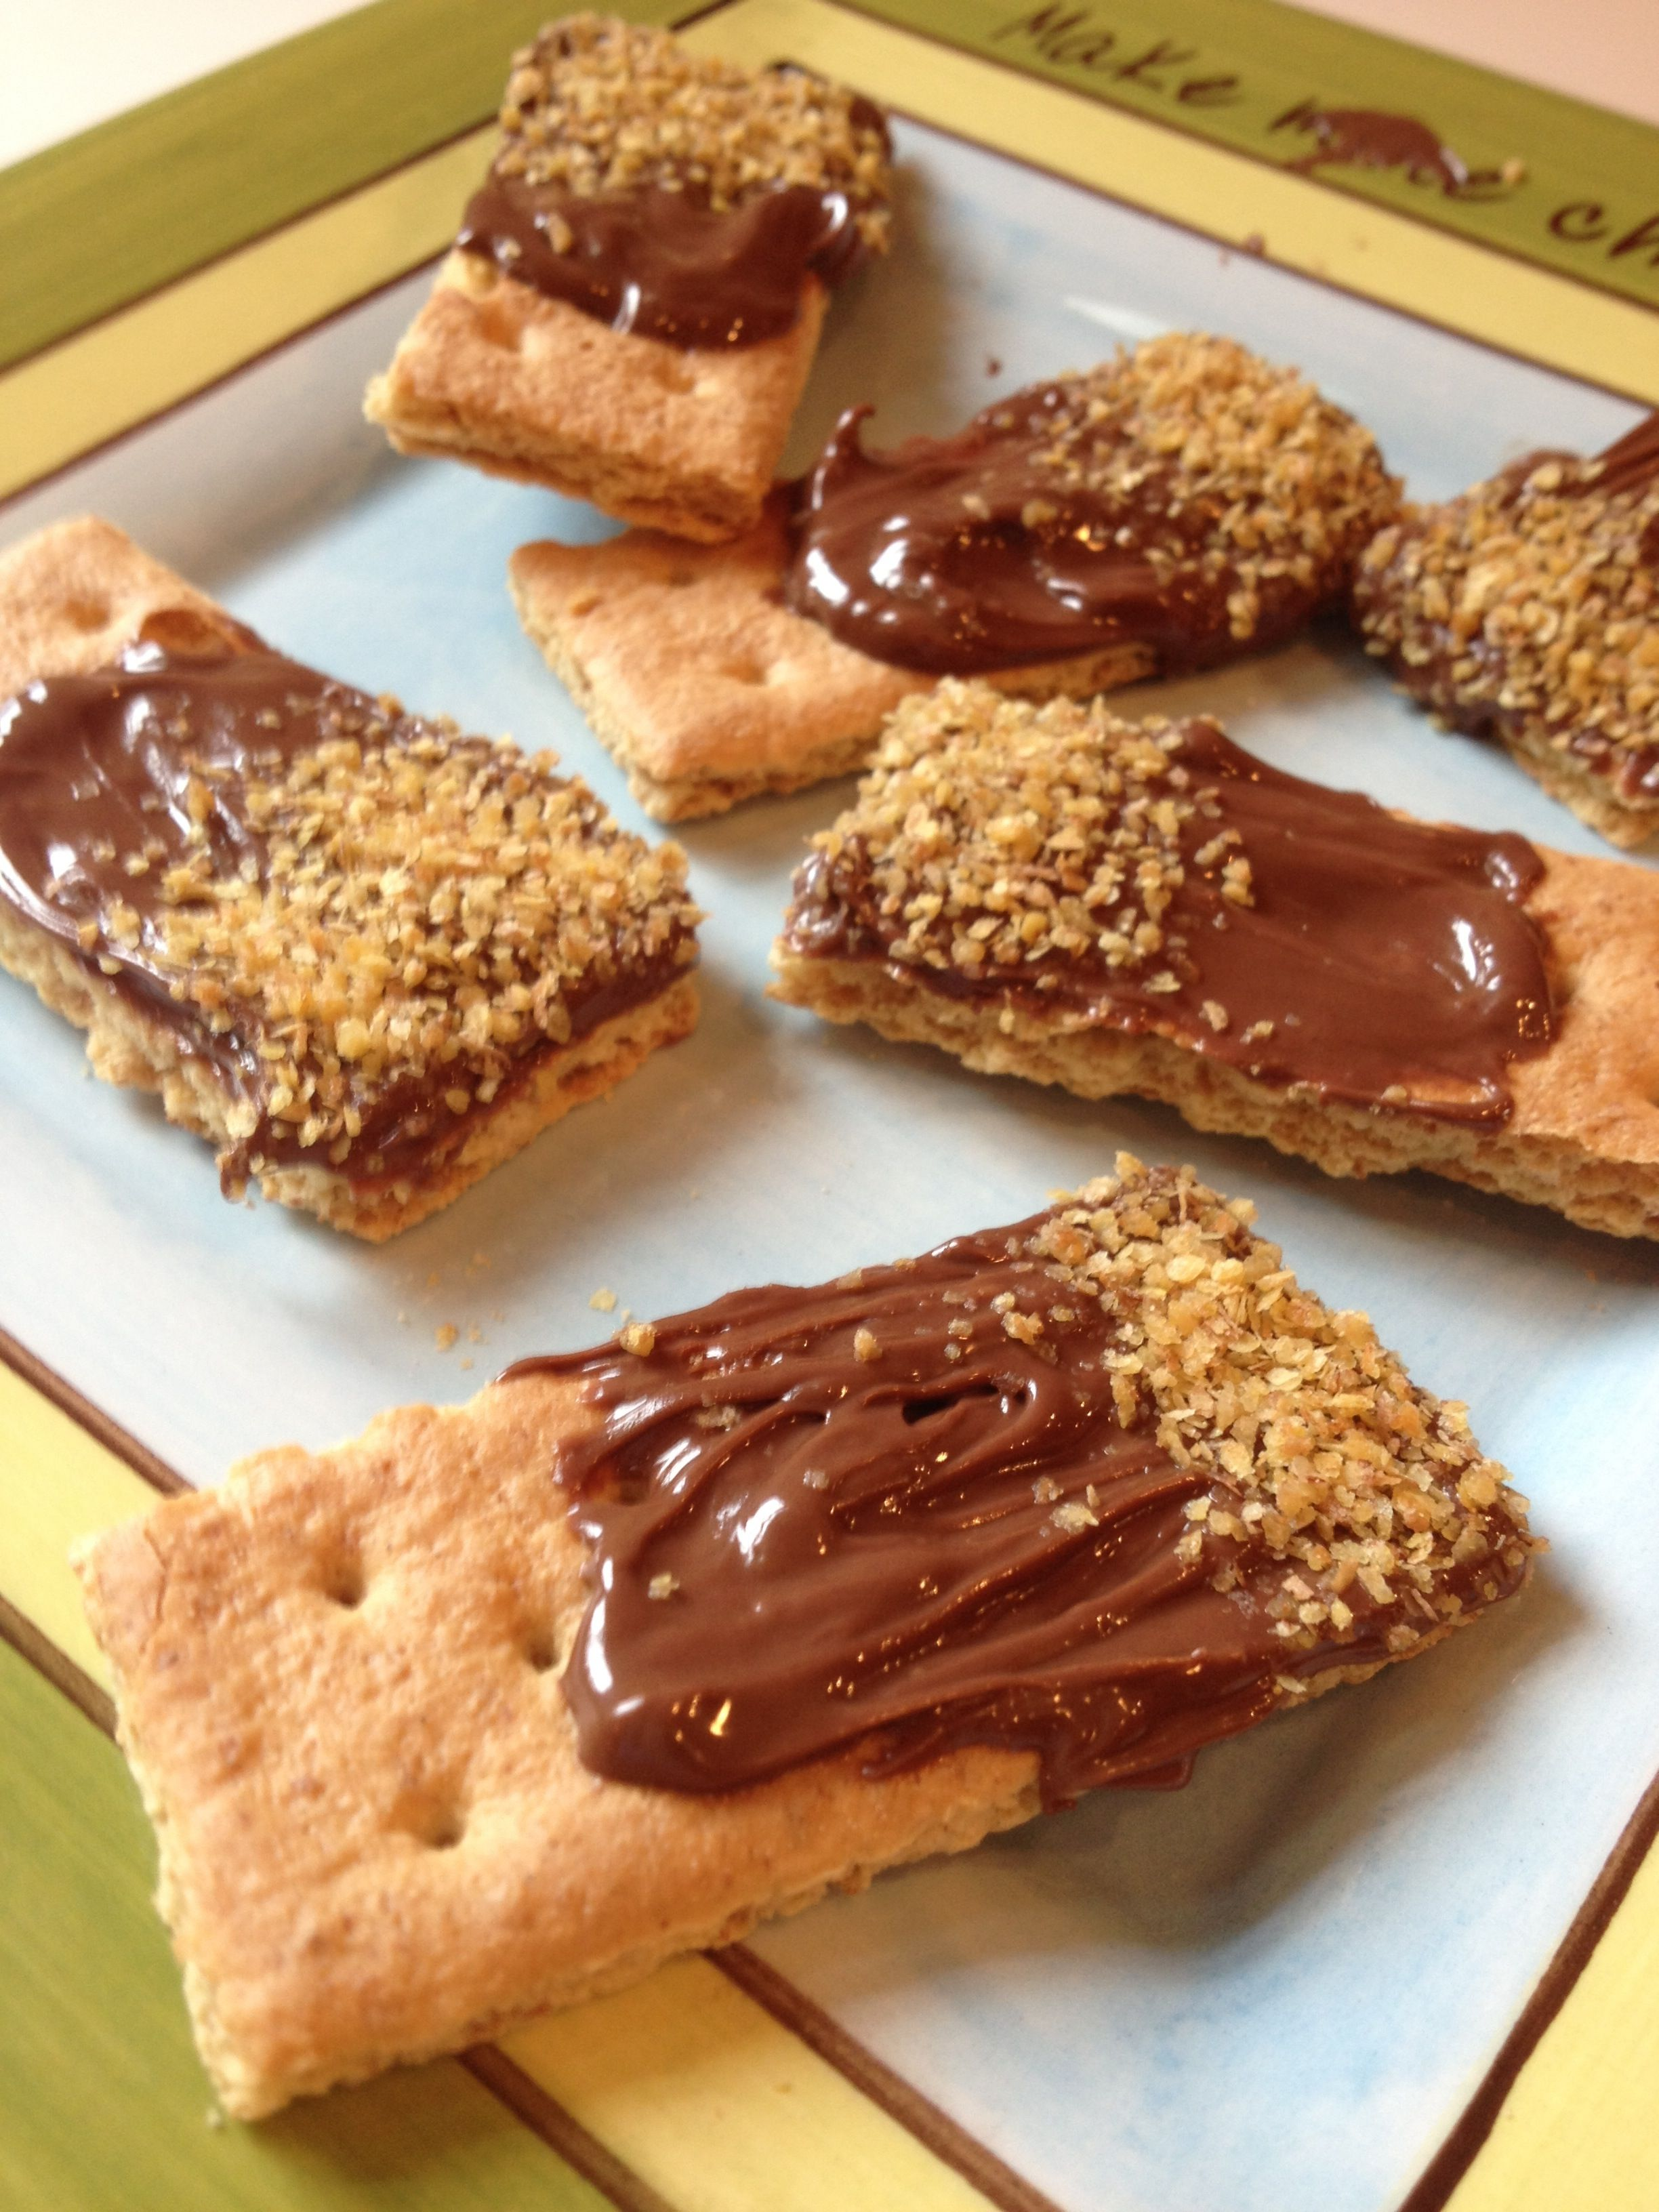 Back to #School Snacks--Nutella Dipped Grahams w/ wheat germ. Gotta get that #healthy twist in there! #snack